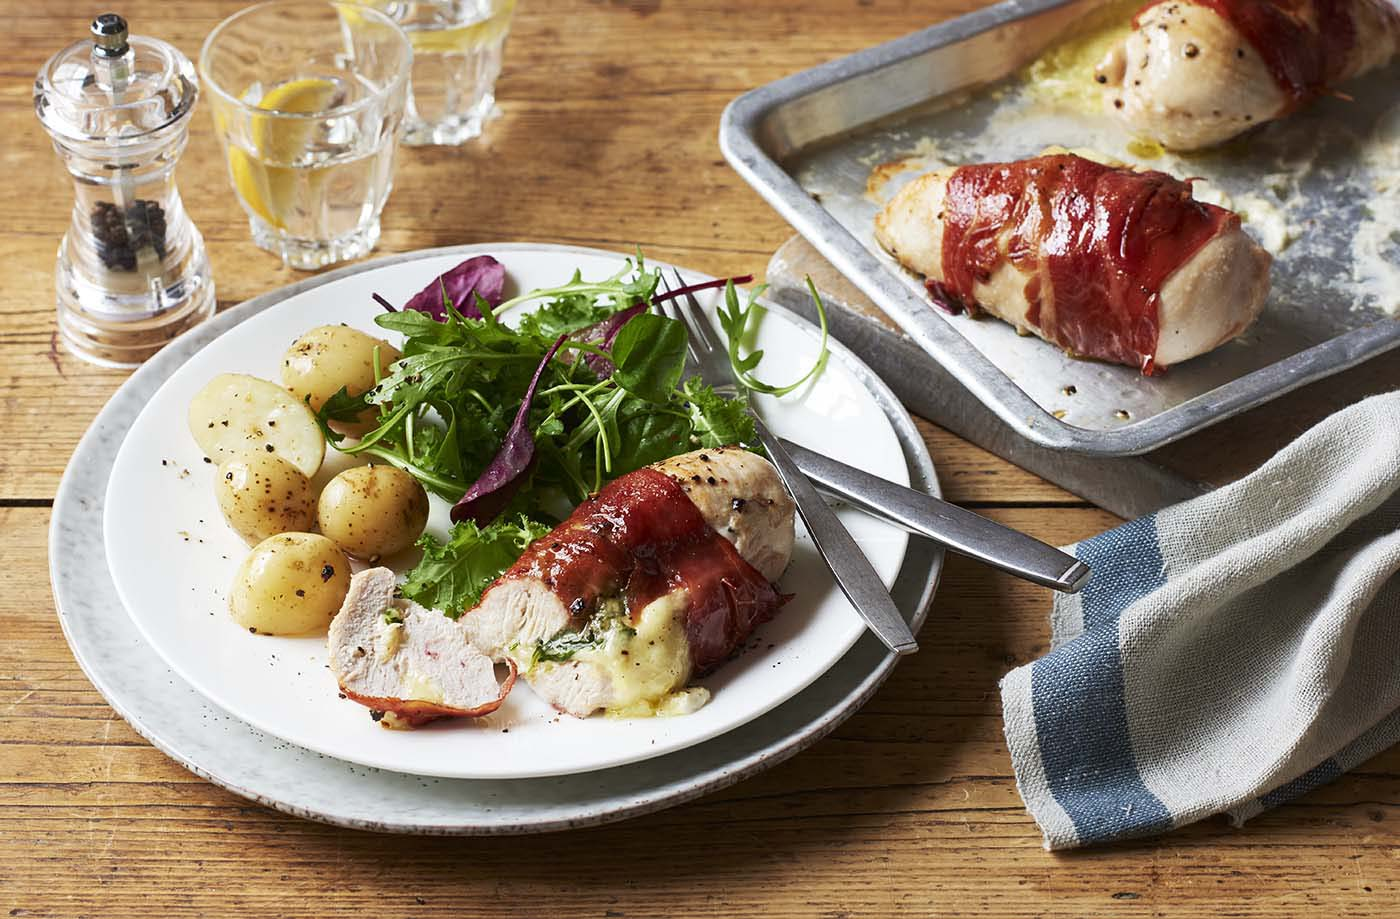 Chicken, mozzarella and Parma ham recipe